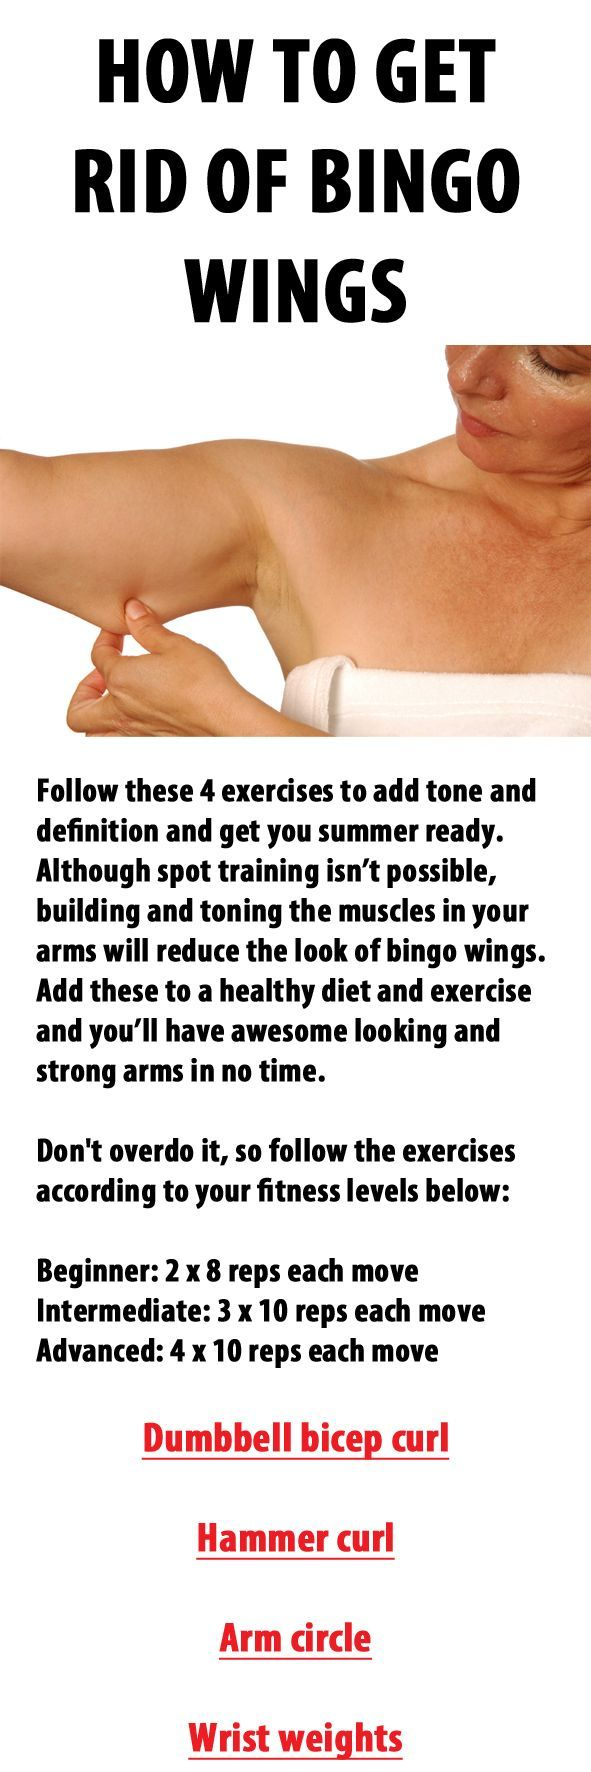 Sun's out, guns out; and it's time to banish those dreaded bingo wings.